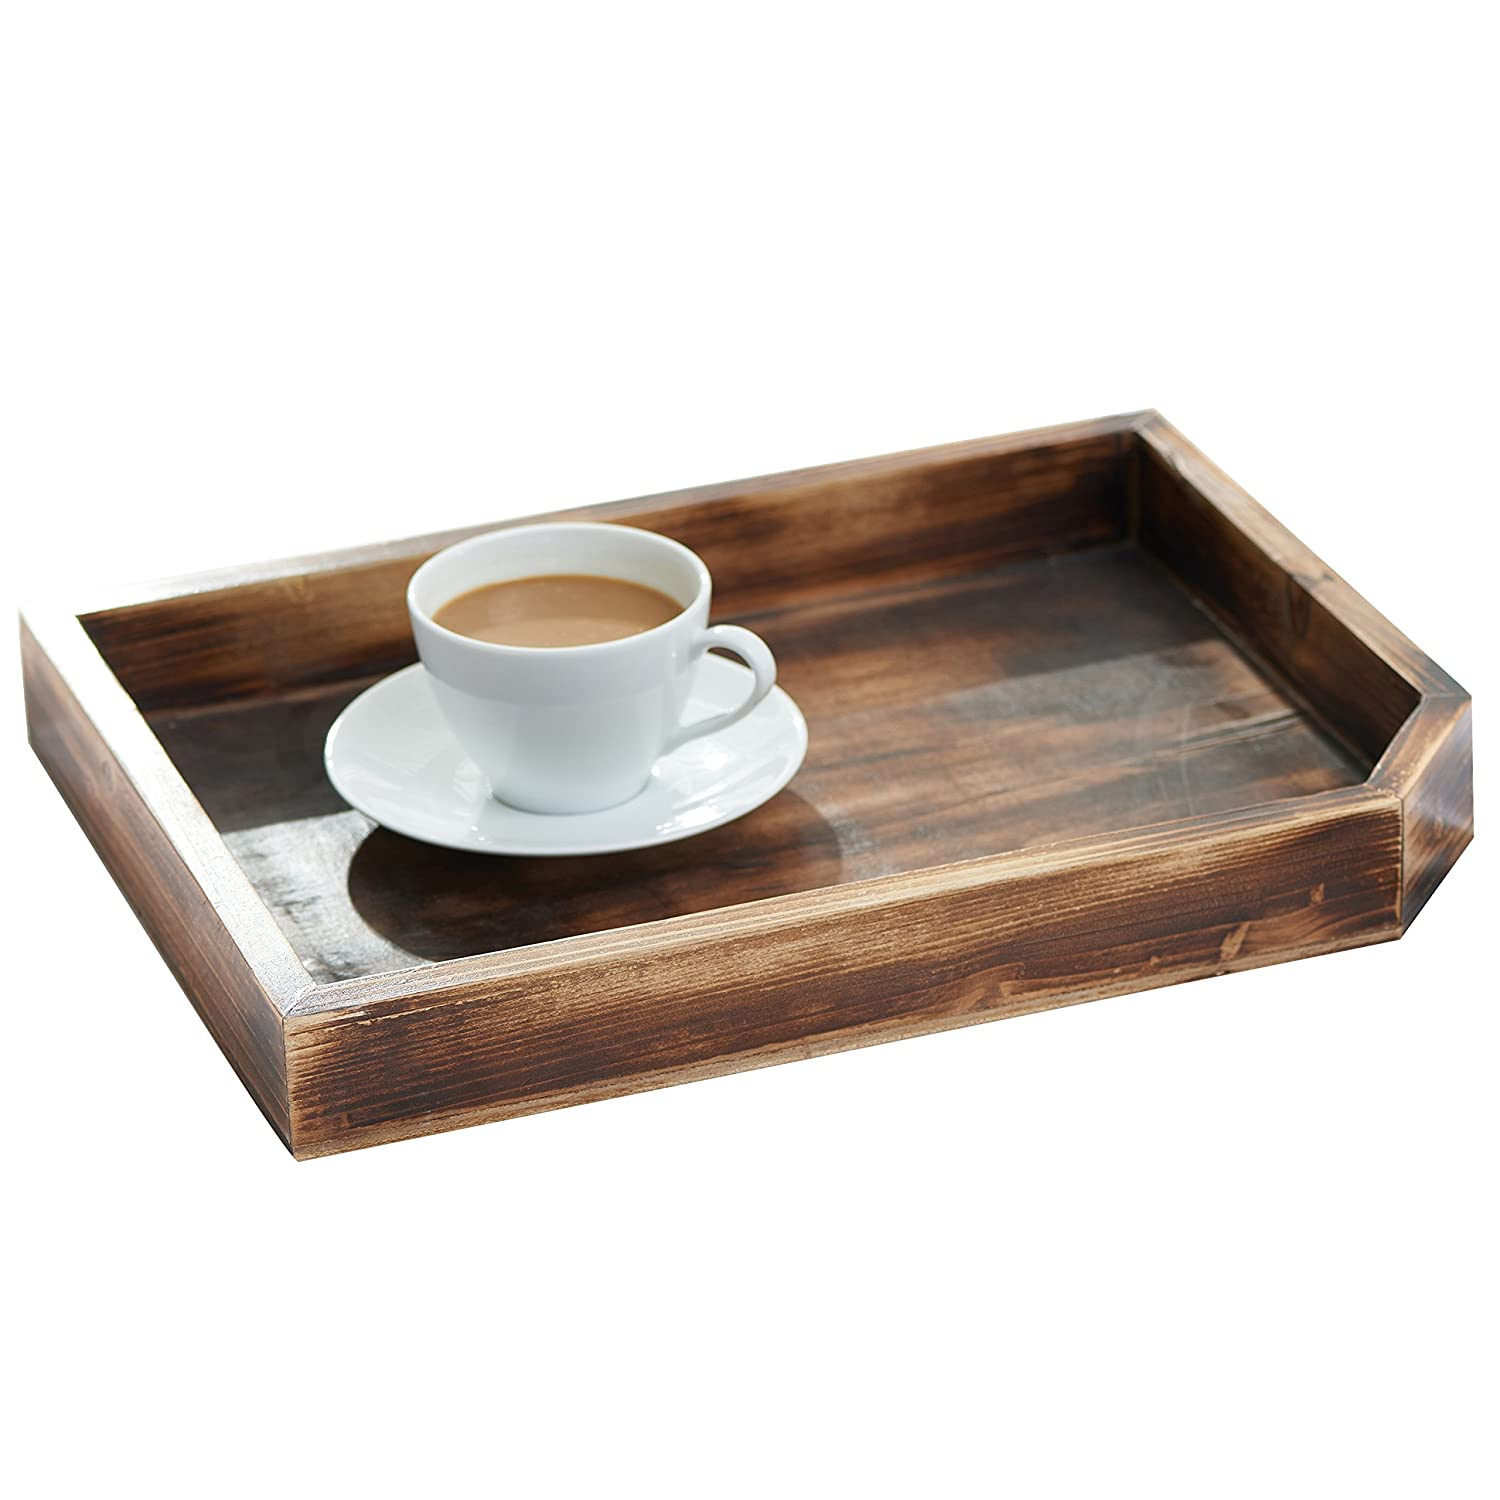 Vintage Wooden Coffee Table Display Tray / Wood Magazine and Document Holder, Dark Brown MyGift